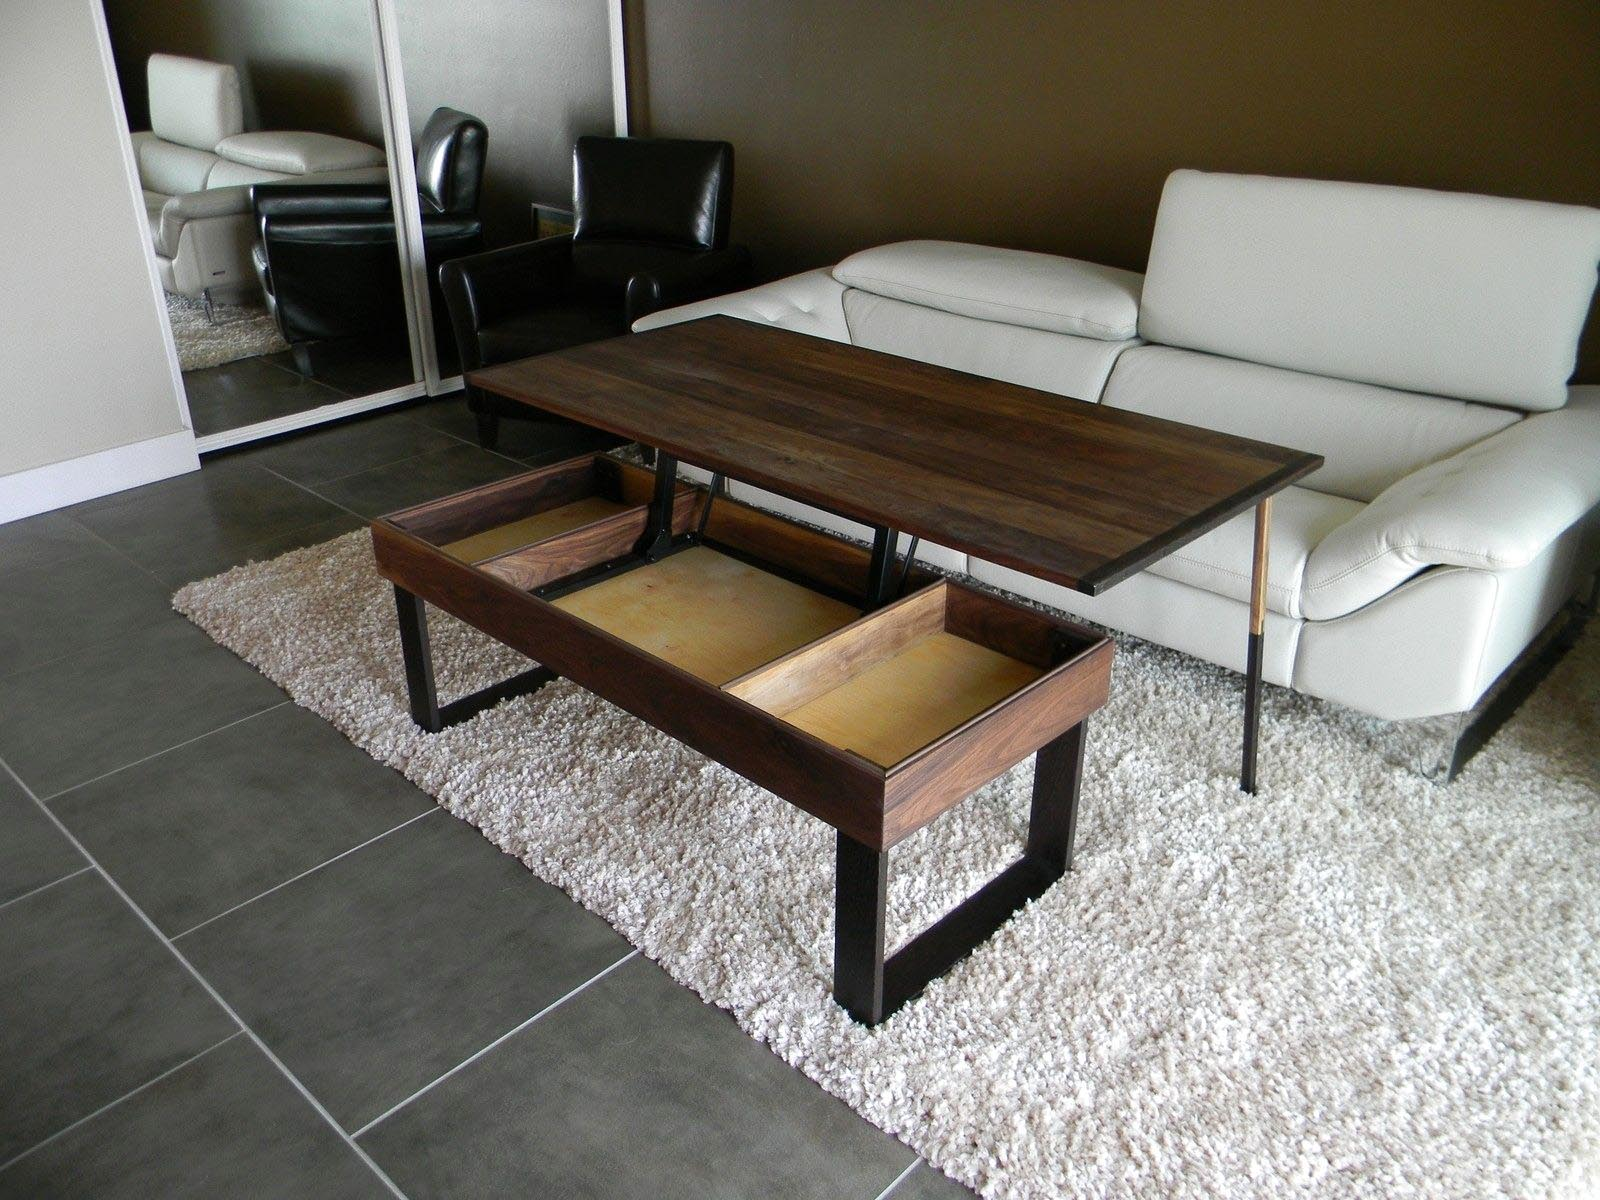 Convertible coffee table to dining table ikea coffee for Ikea table convertible